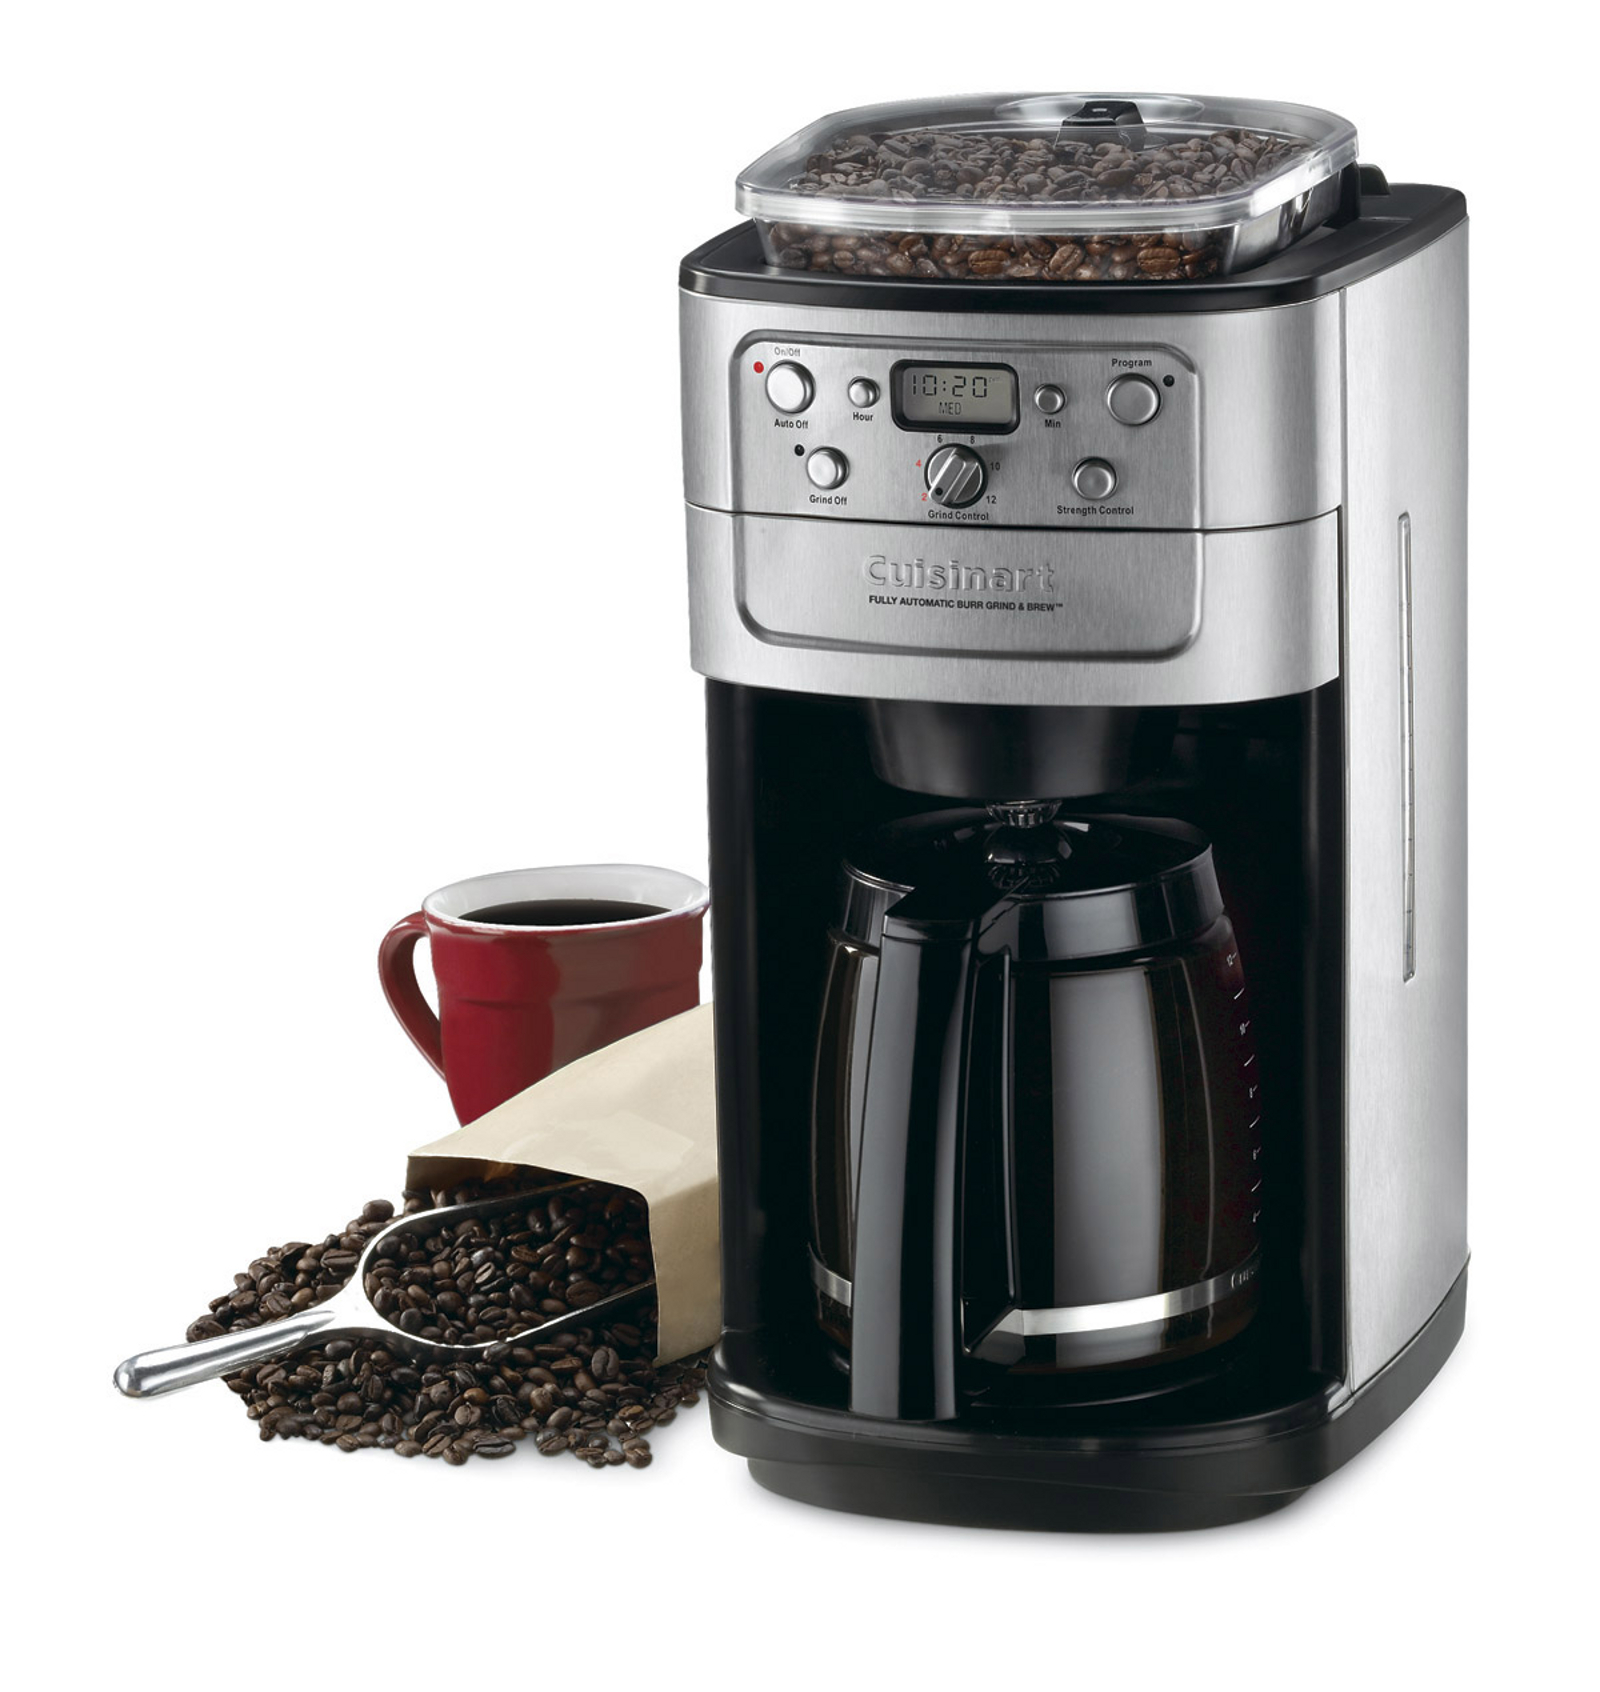 Cuisinart DGB-700BC Grind & Brew 12-Cup Automatic Coffeemaker